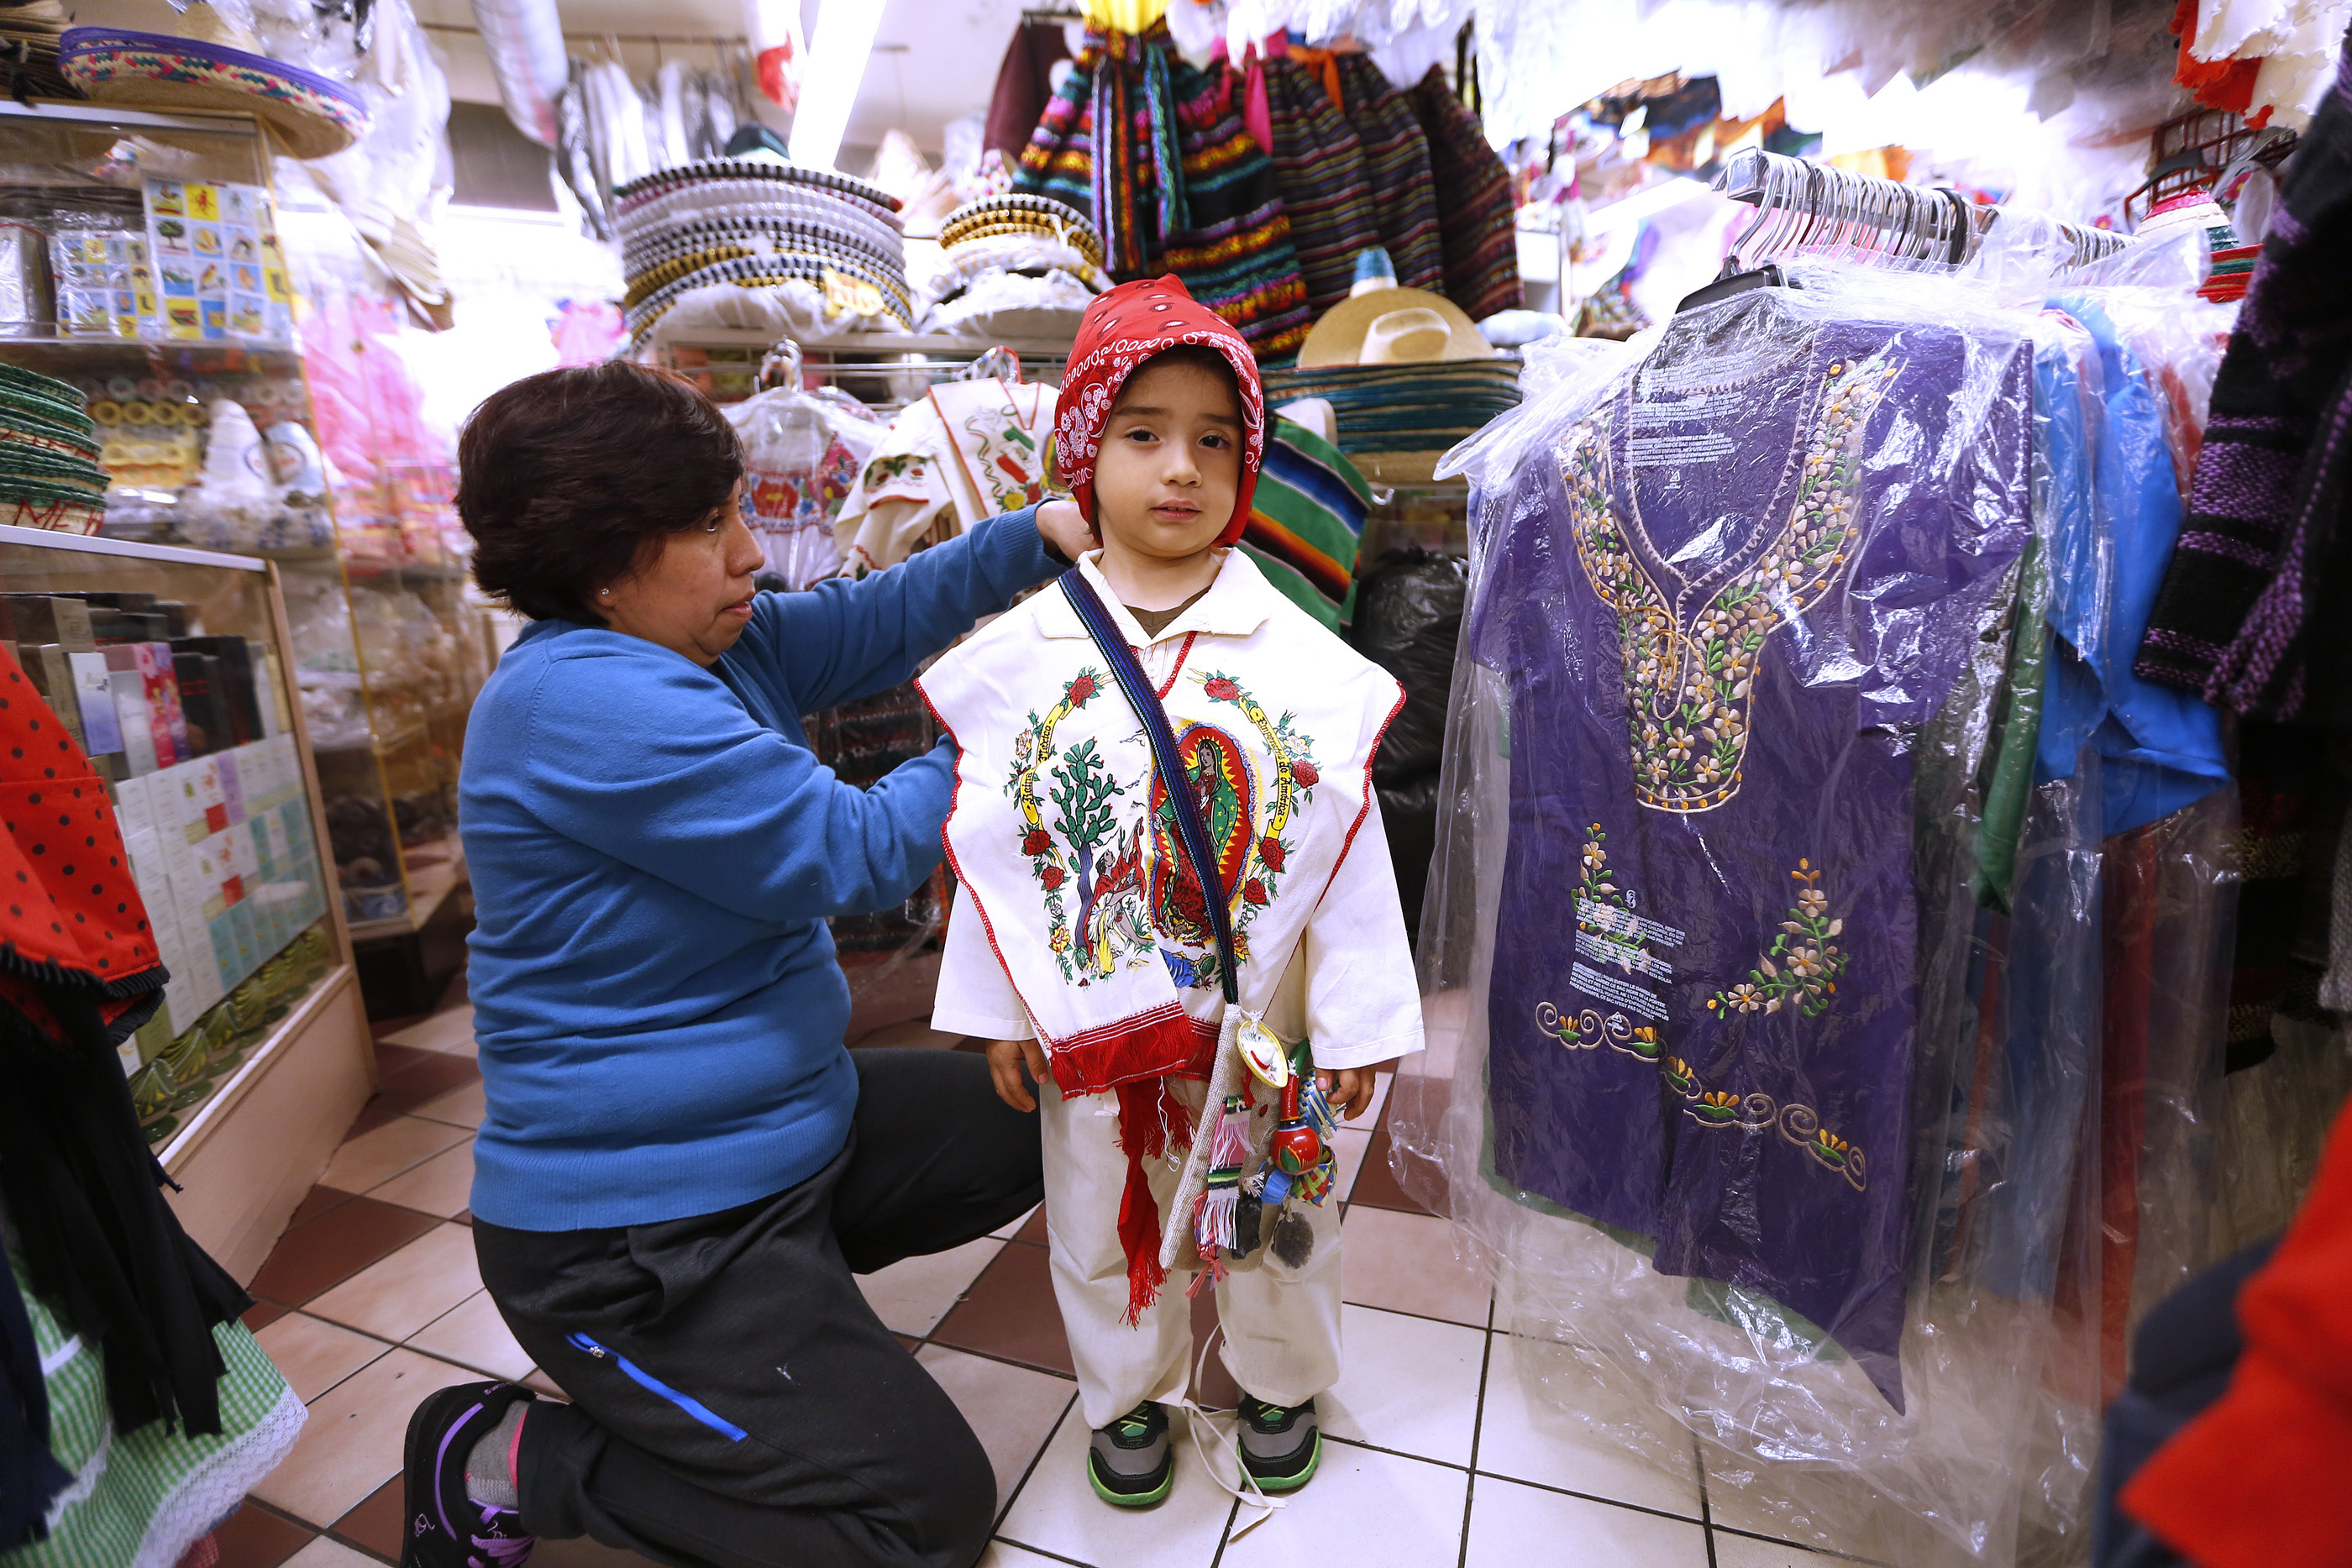 12/09/16 /LOS ANGELES/5 year-old Joshua Jimenez with his grandmother Mary Teresa Jimenez, from Thousand Oaks, tries on an outfit while shopping at the popular Mercadito in East Los Angeles. Hundreds of religious Catholics will be celebrating the Virgin of Guadalupe. (Photo by Aurelia Ventura/La Opinion)